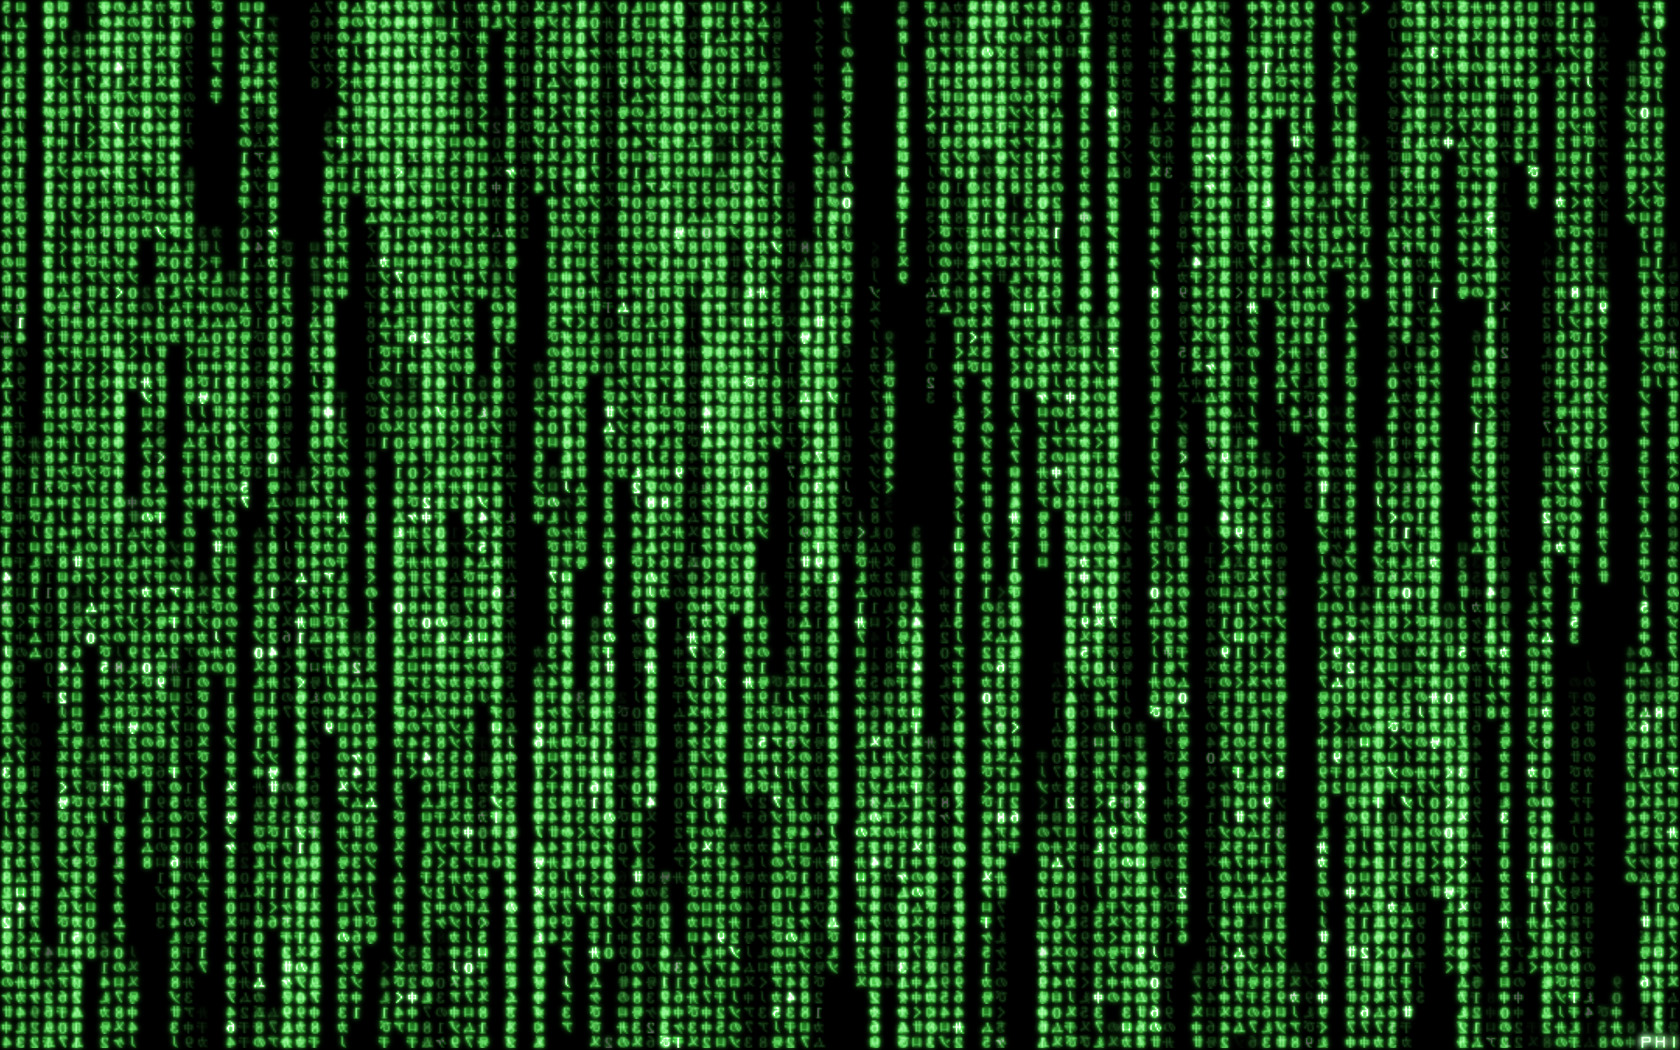 46+] Moving Binary Code Wallpaper on WallpaperSafari